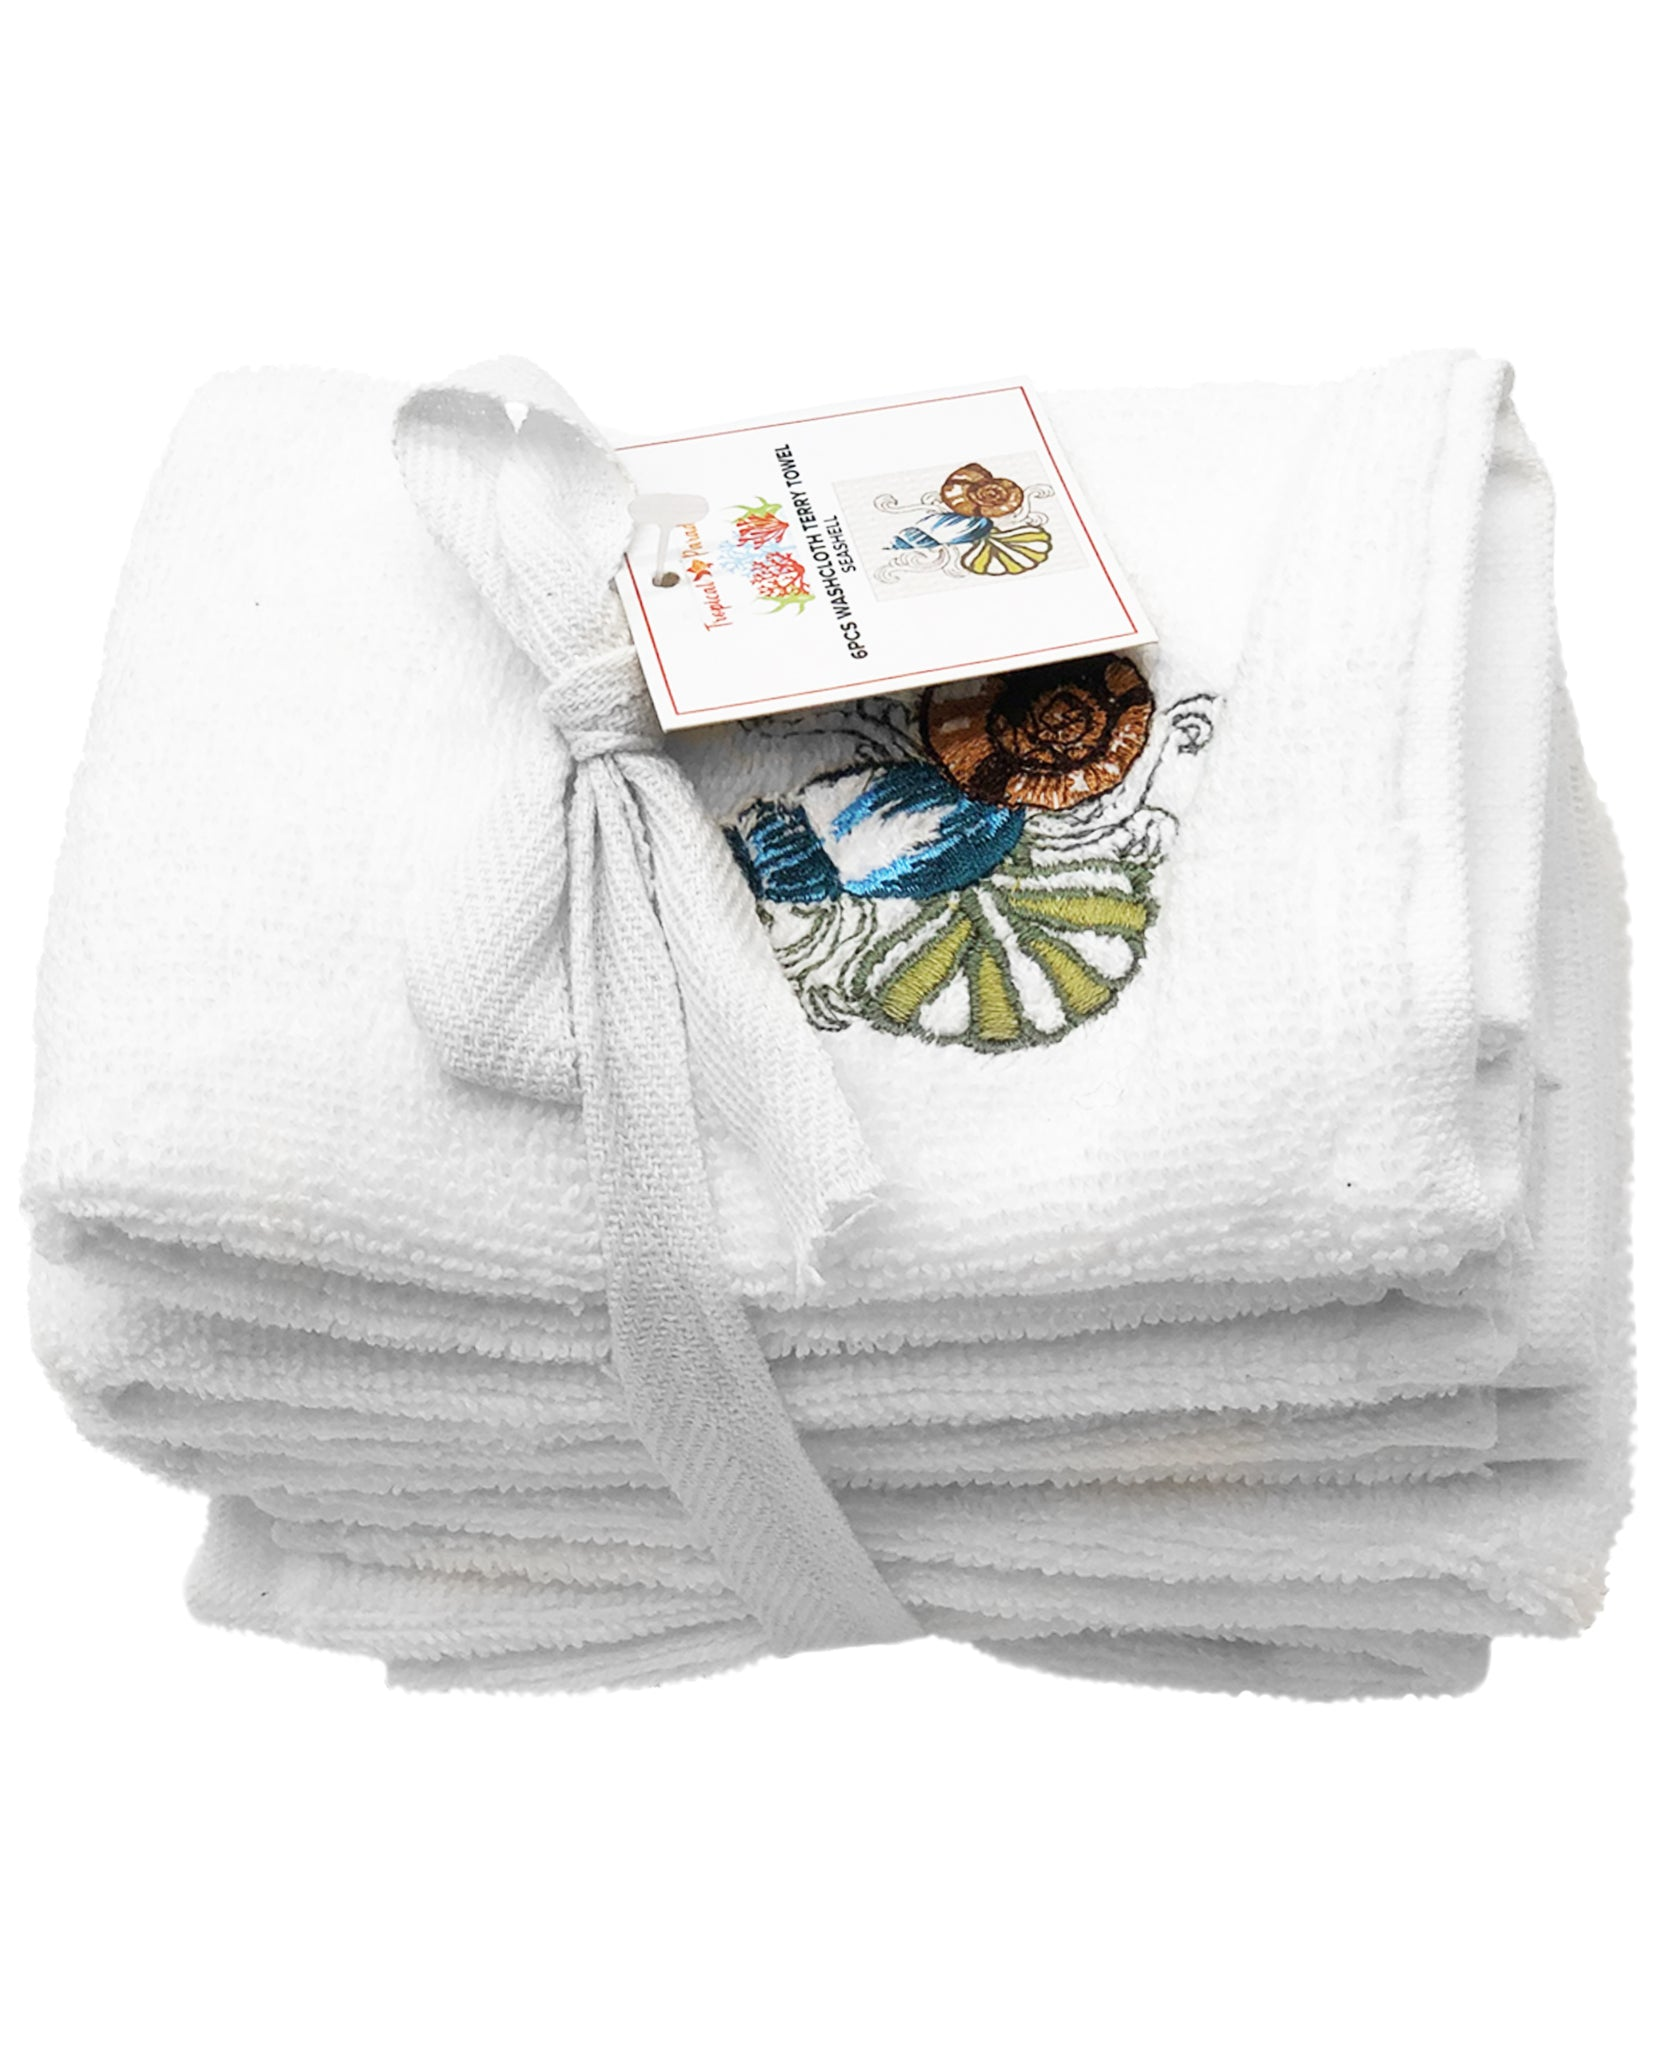 6 PC Seashells Embroidery Terry Towel, 12''x12'' Mod Lifestyles